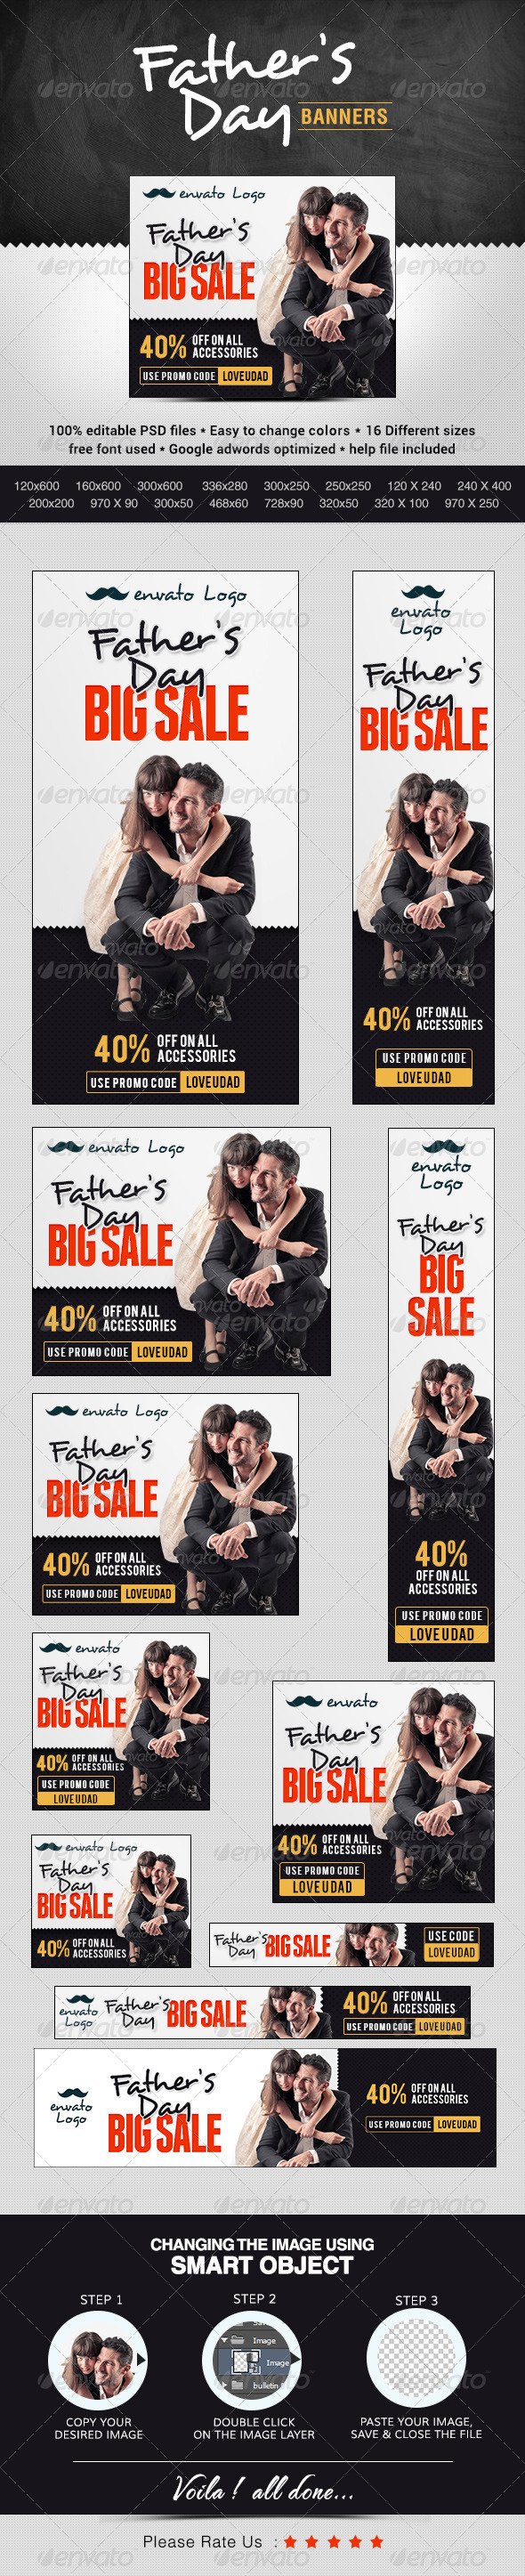 GraphicRiver Father s Day Banners 7926213